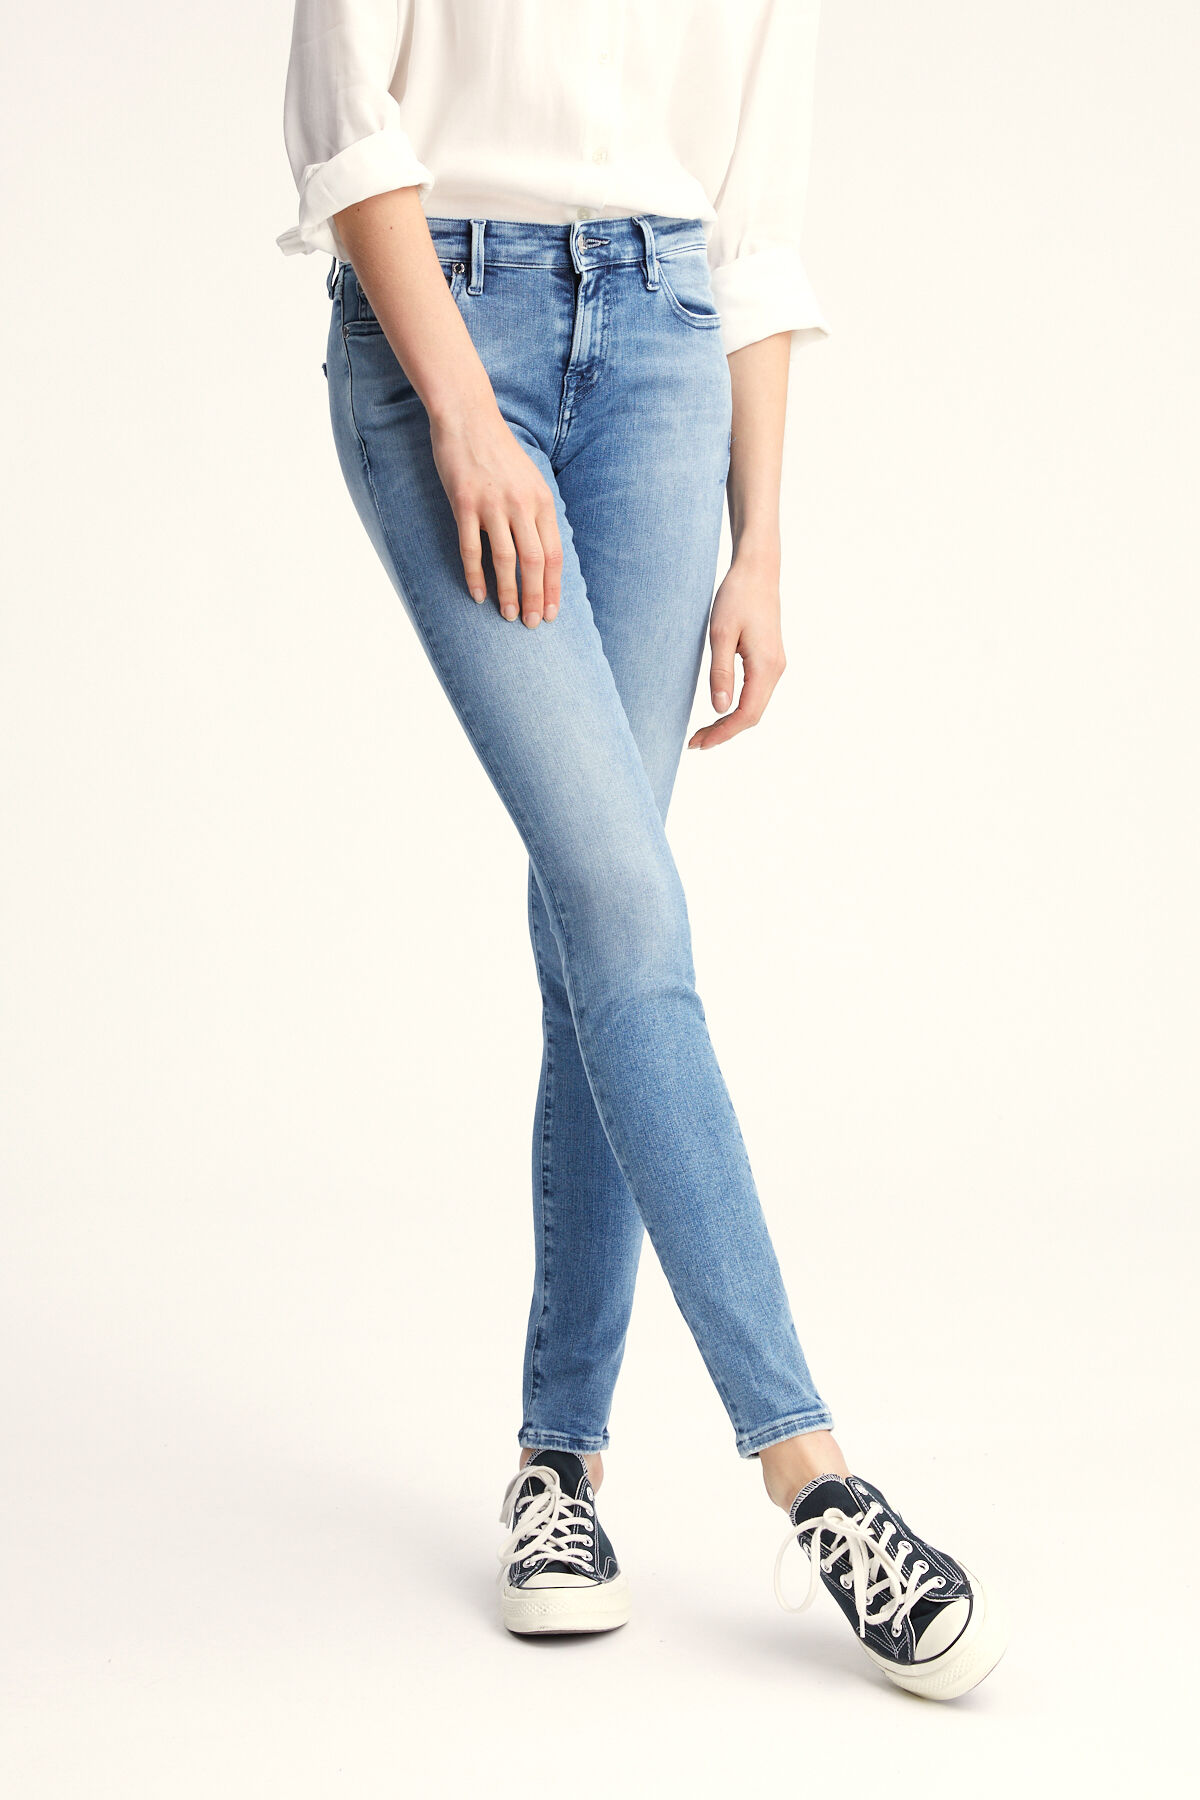 SPRAY Light, Fresh Blue Denim - Mid-rise, TIght Fit